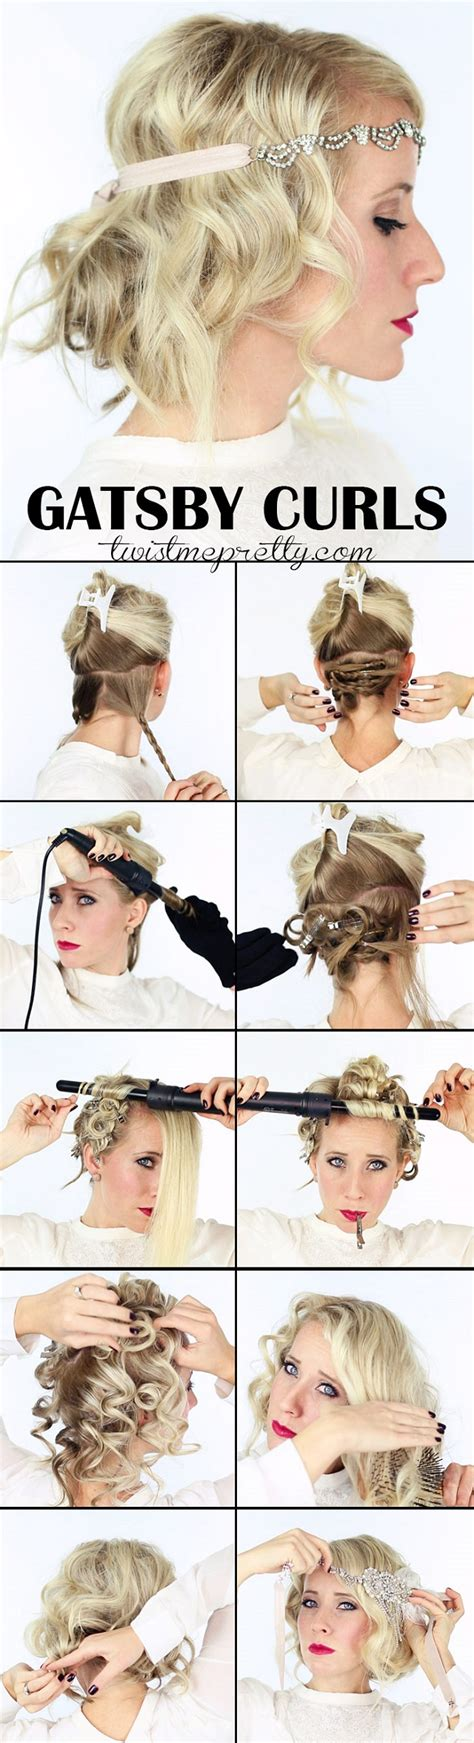 do it yourself hairstyles gatsby you tube the great gatsby inspired hairstyle tutorial alldaychic